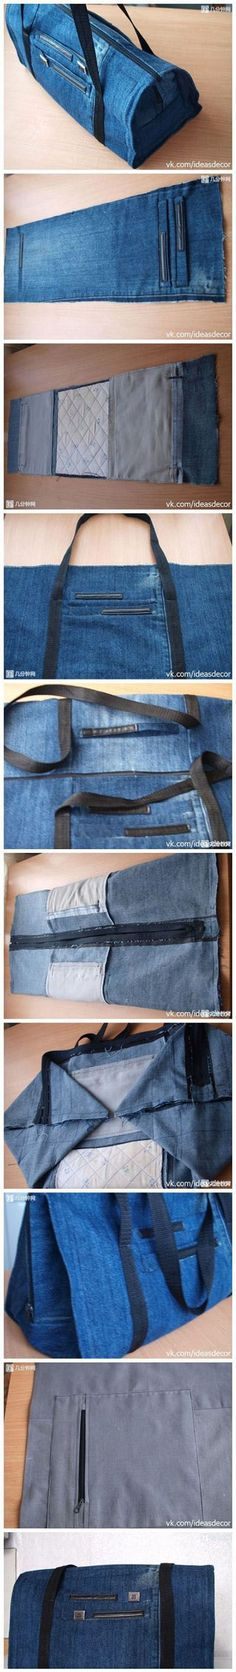 Diy Jean Bag | DIY Crafts Topp